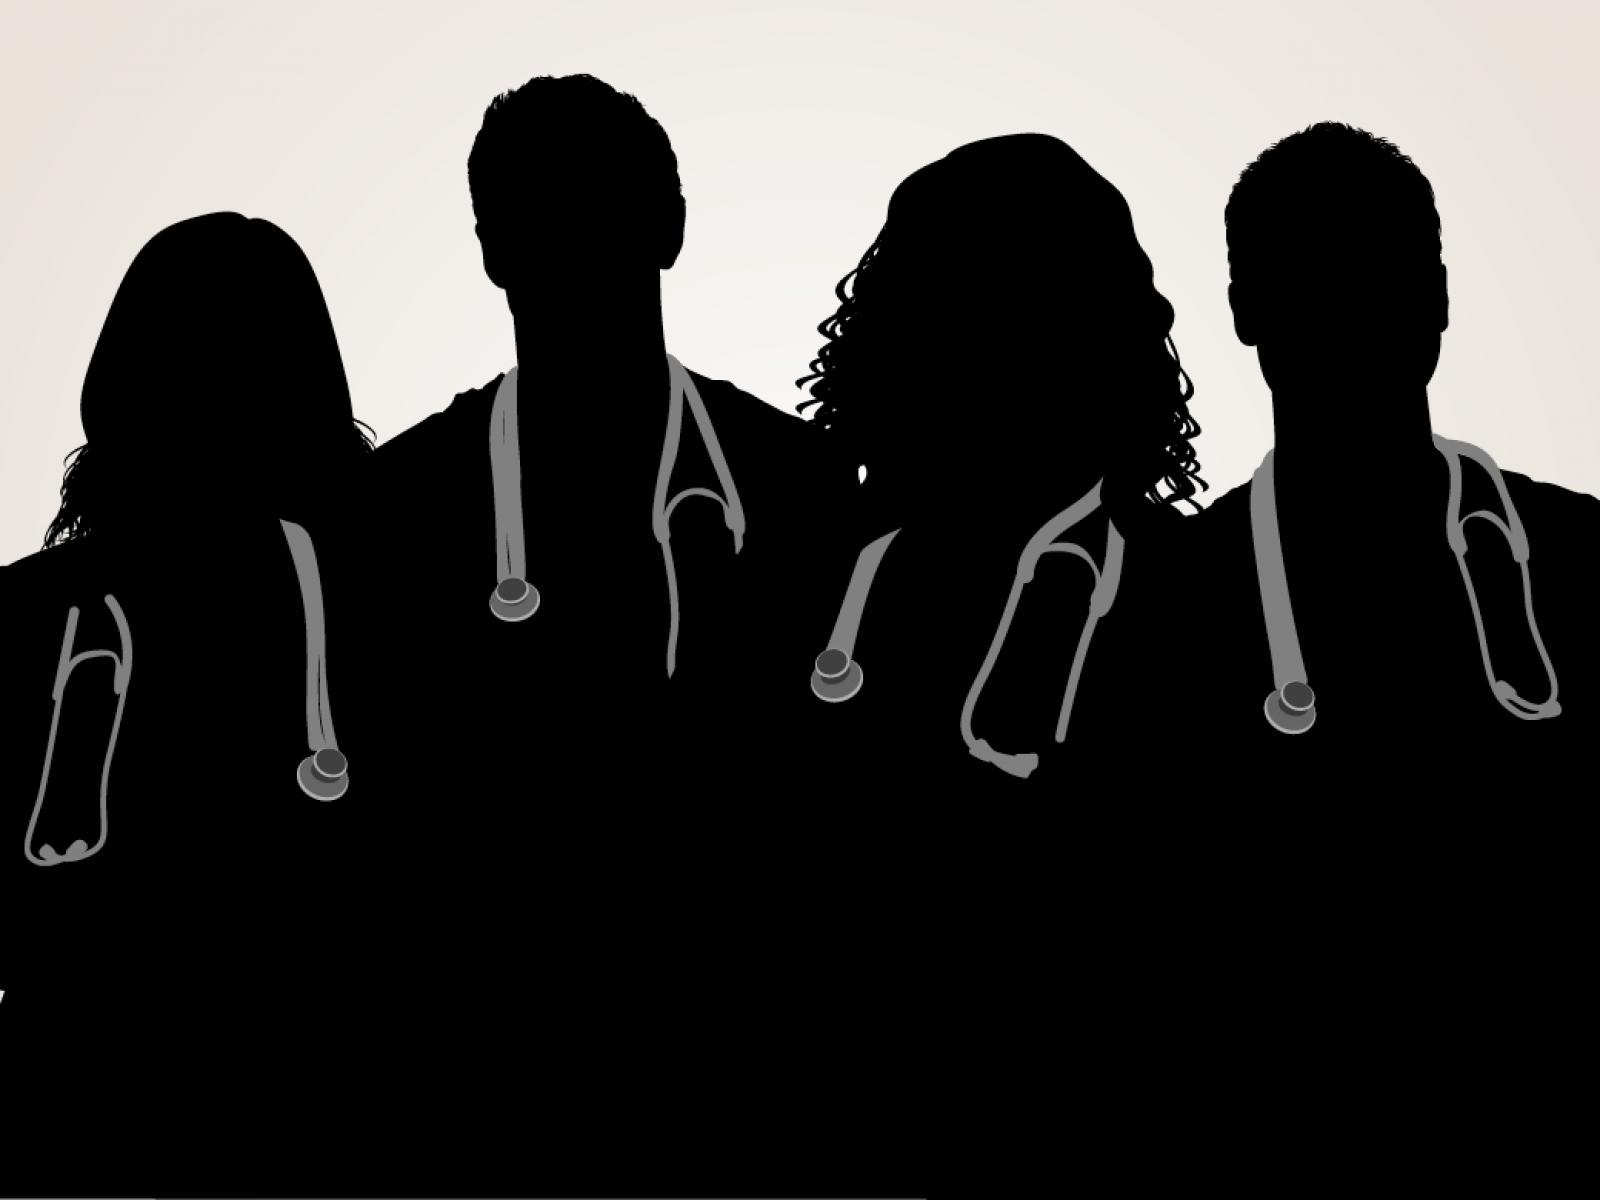 Silhouette of physicians